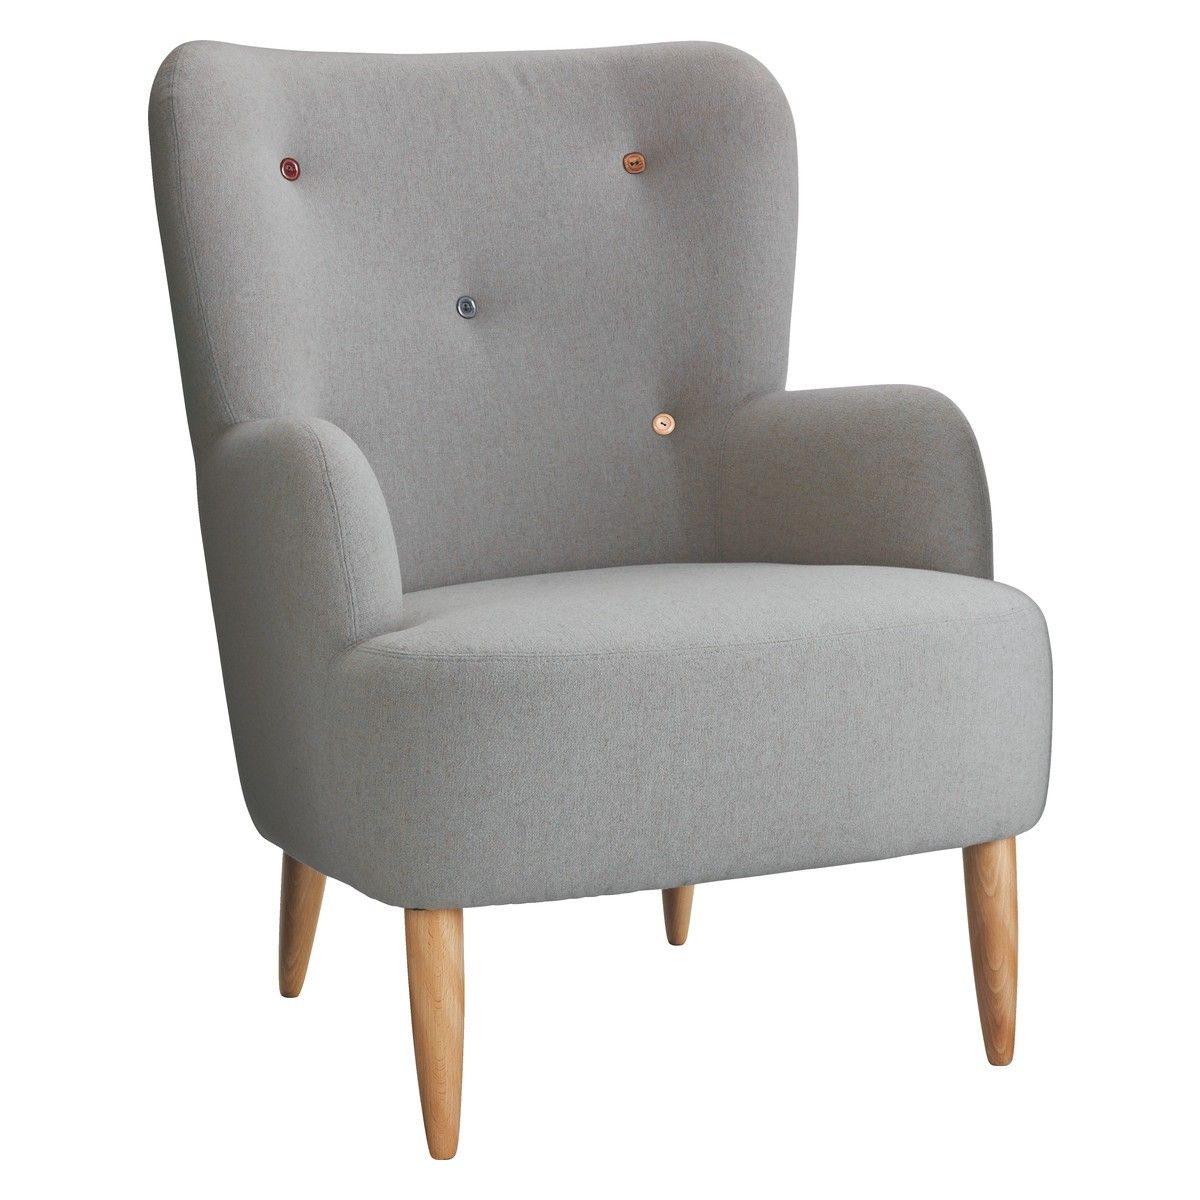 wilmot grey wool mix armchair with multi coloured buttons